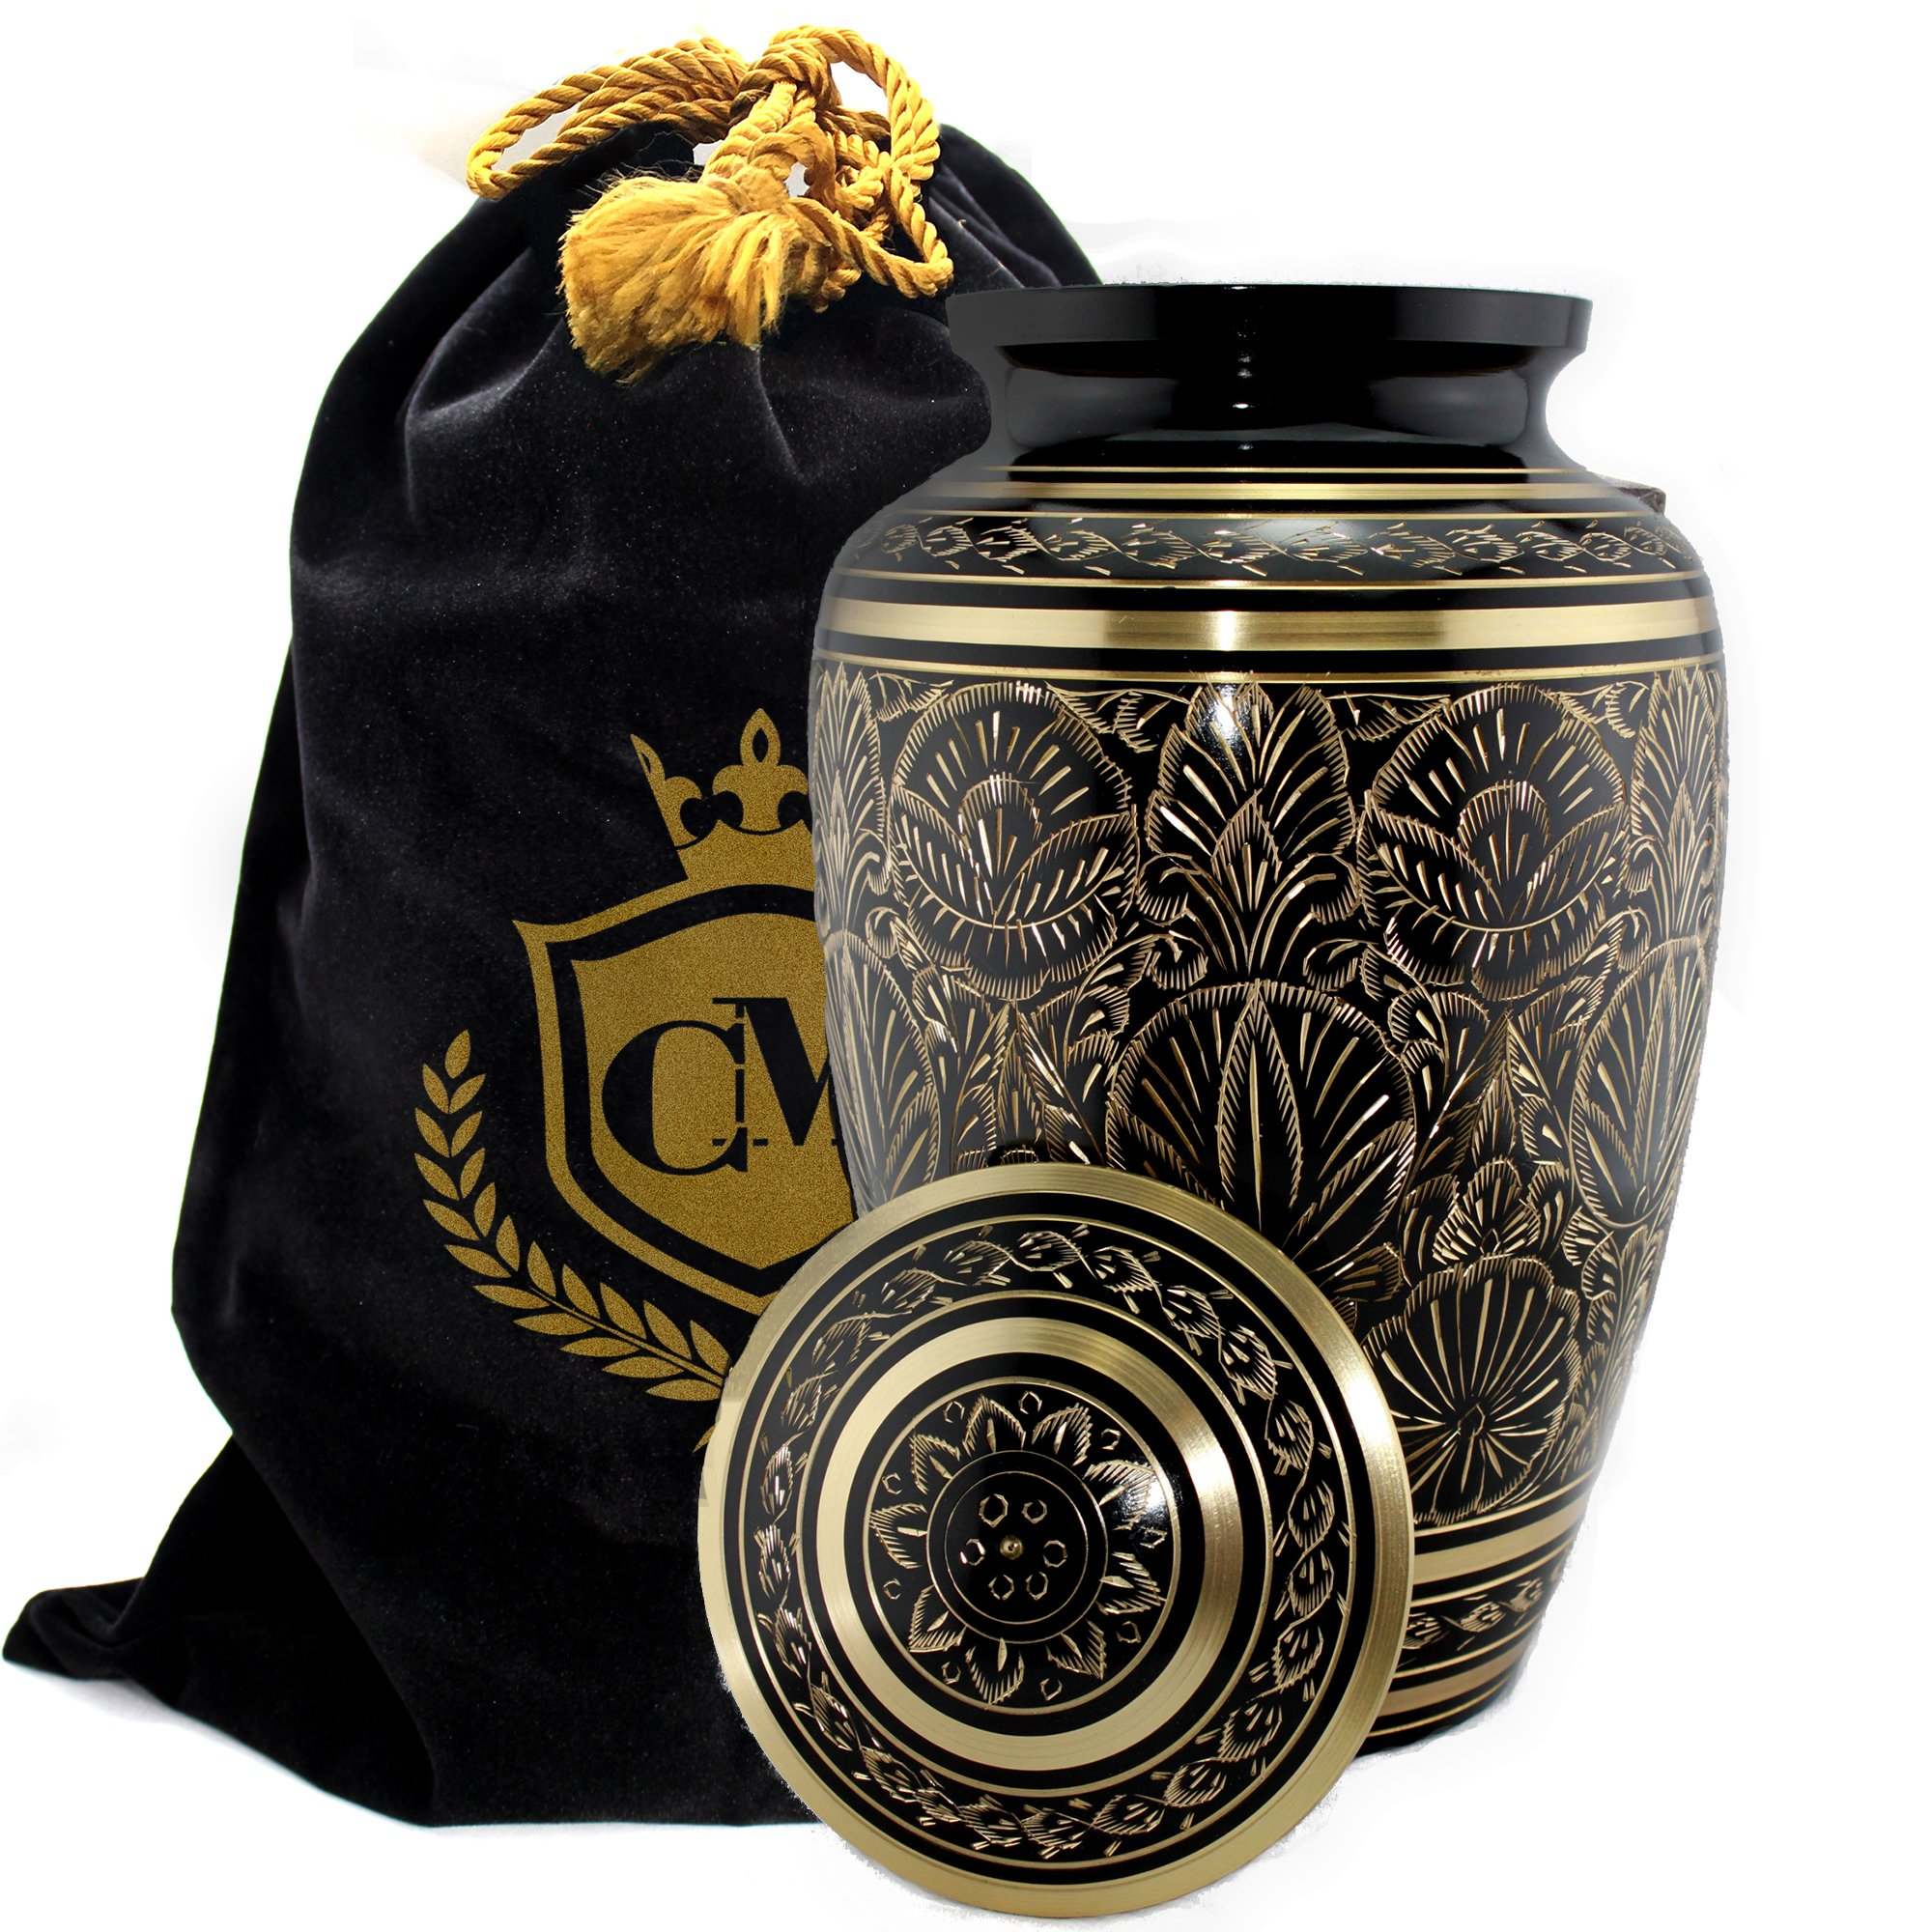 Majestic Radiance 100% Brass Cremation Urn for Human Ashes Large and Small (Large)… by Connolly Memorials (Image #2)